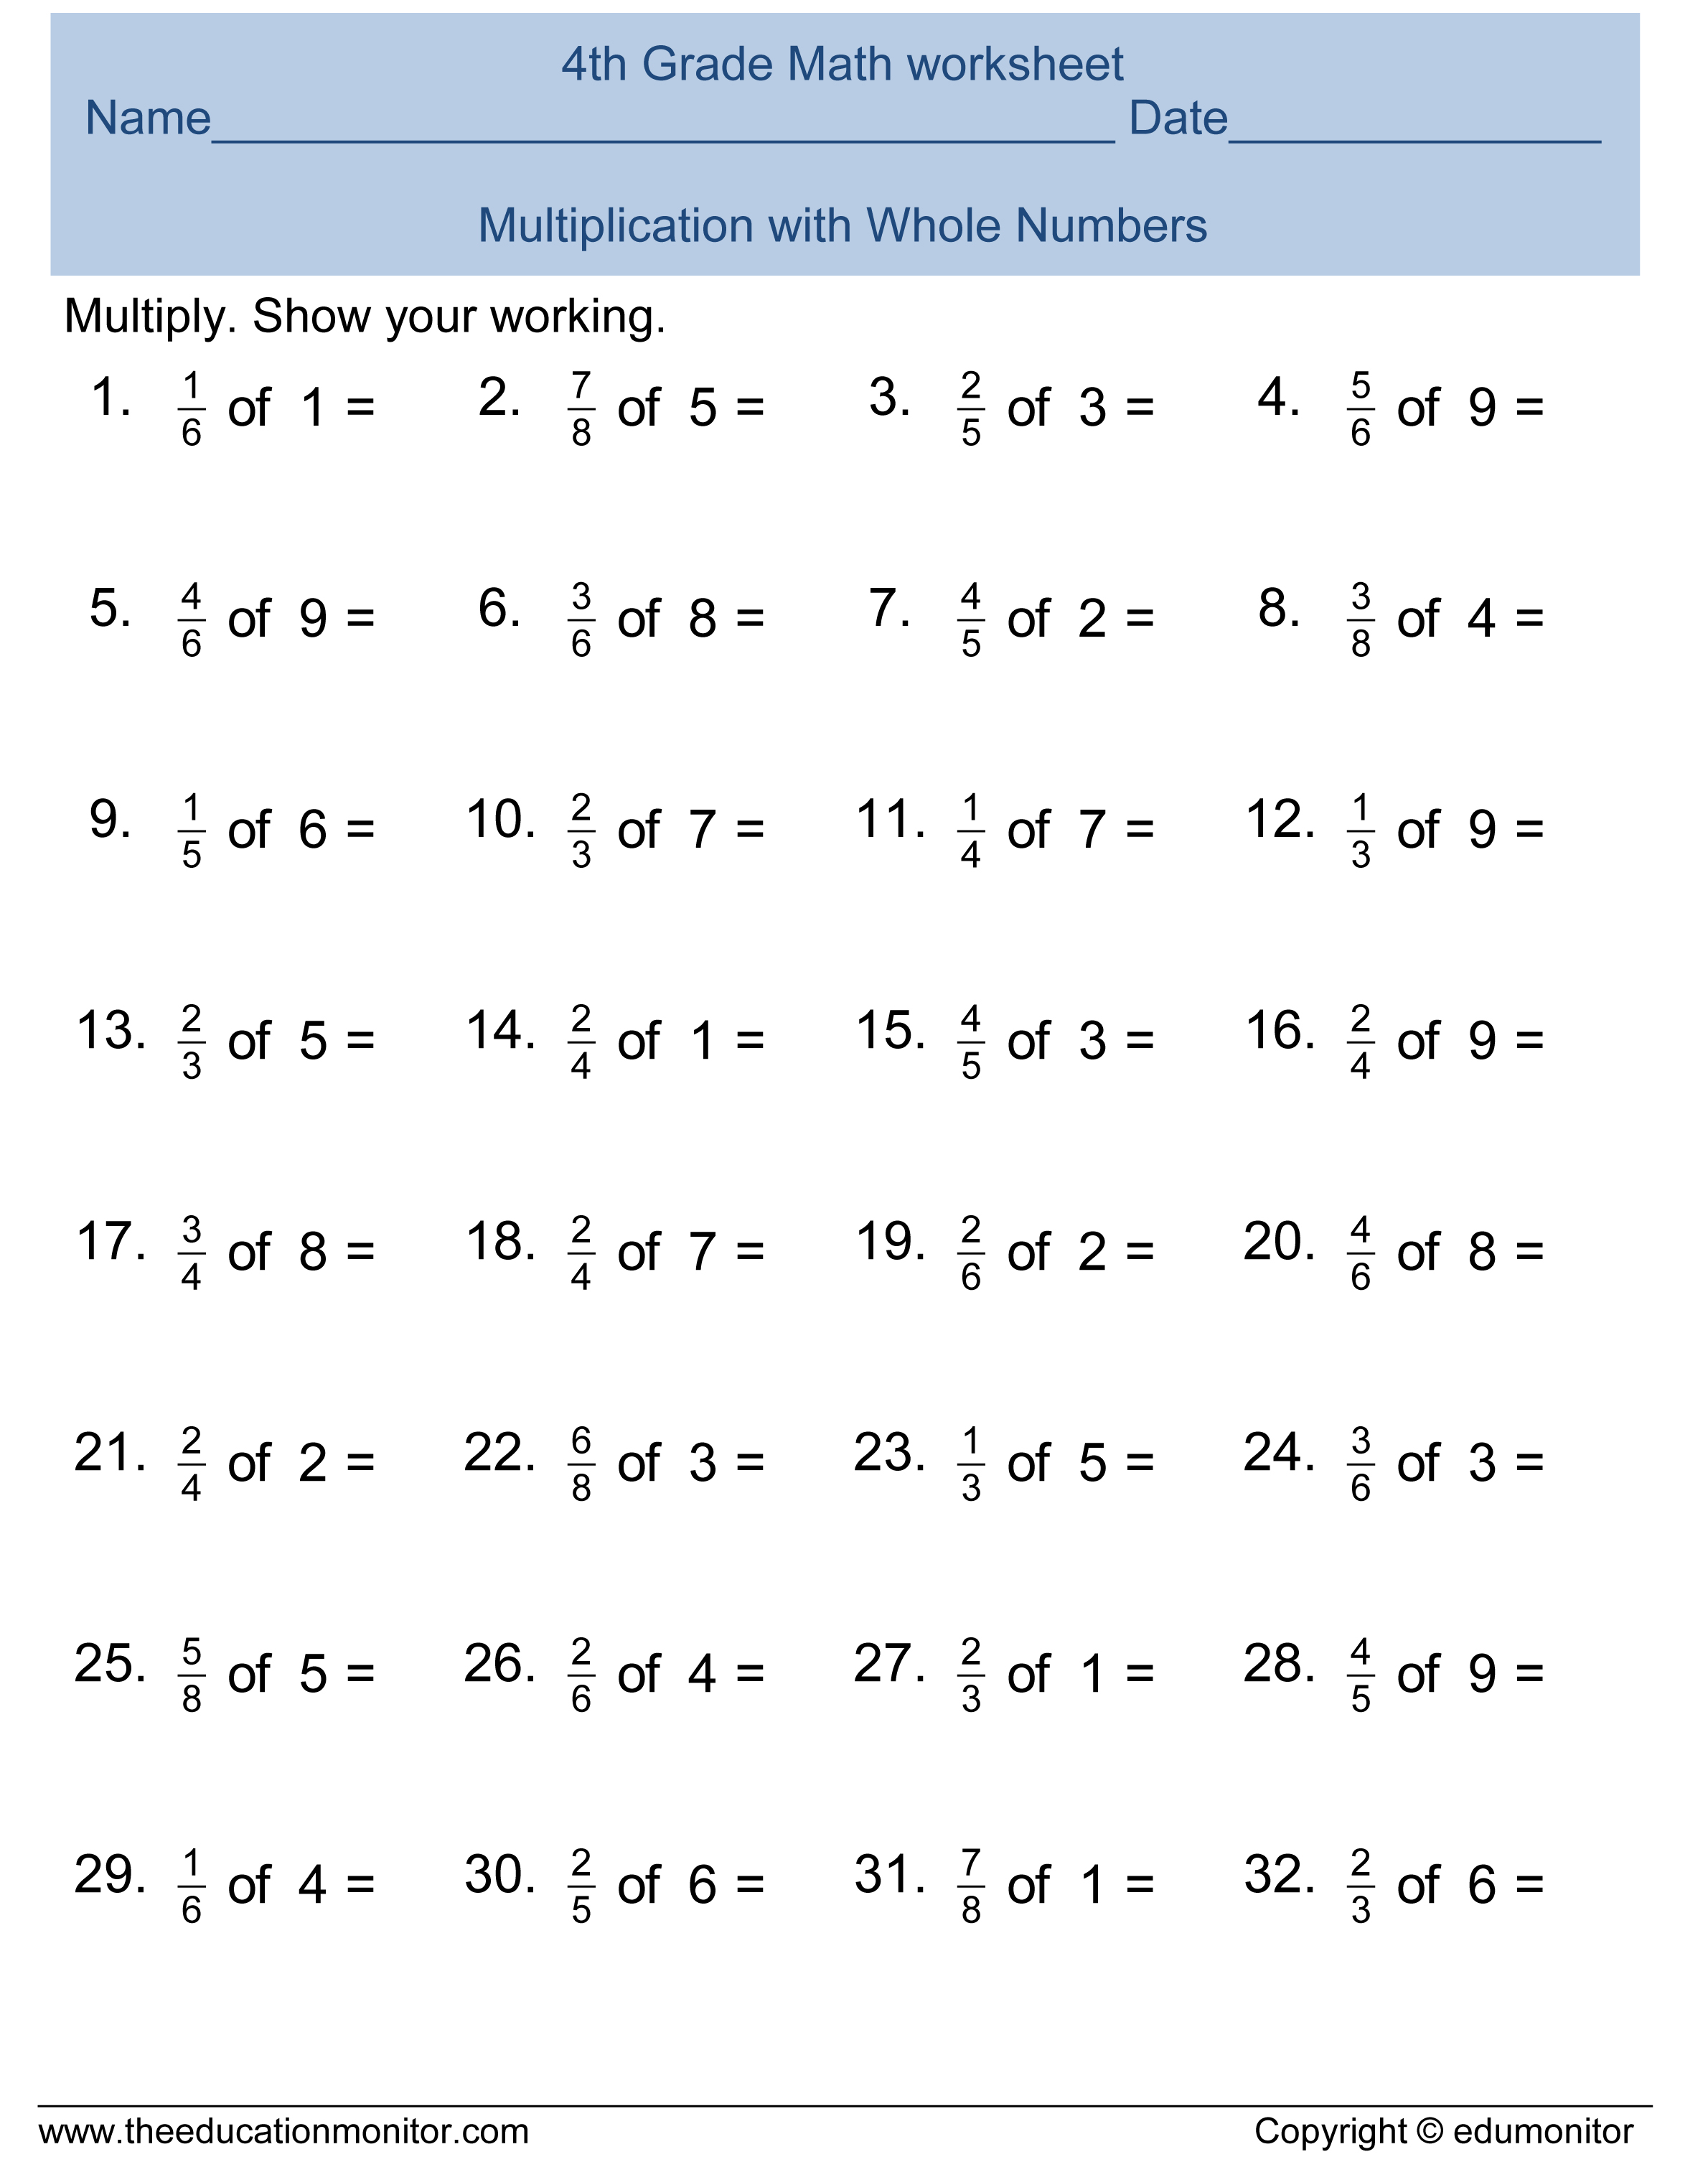 Worksheet Fractions For Fourth Grade free printable worksheets for 4th grade fourth fractions and printables